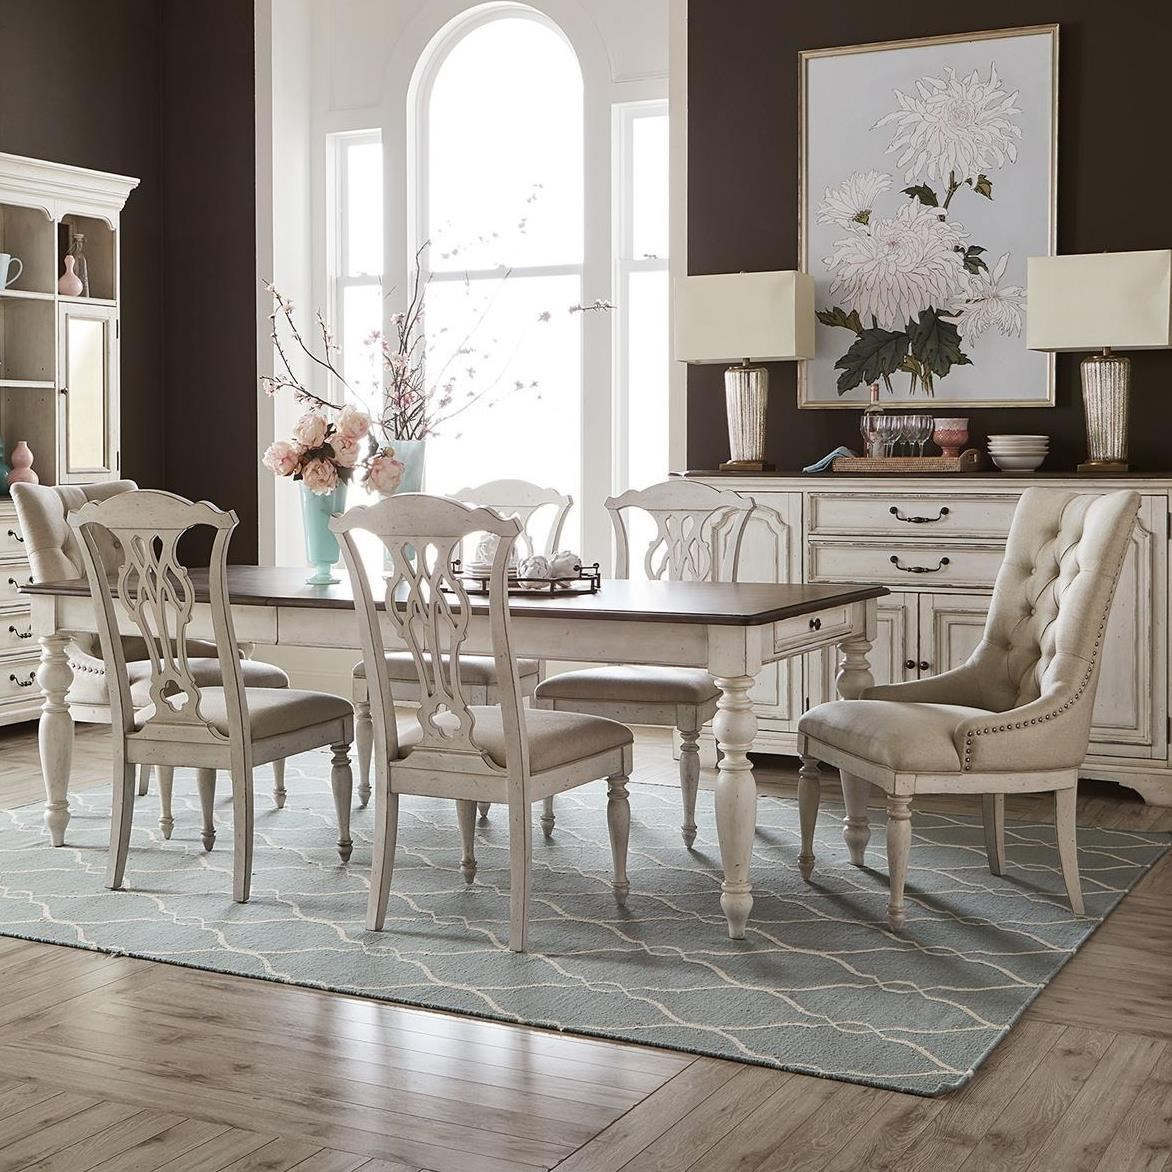 Traditional 7-Piece Rectangular Table Set with Storage, Splat Back & Tufted Chairs